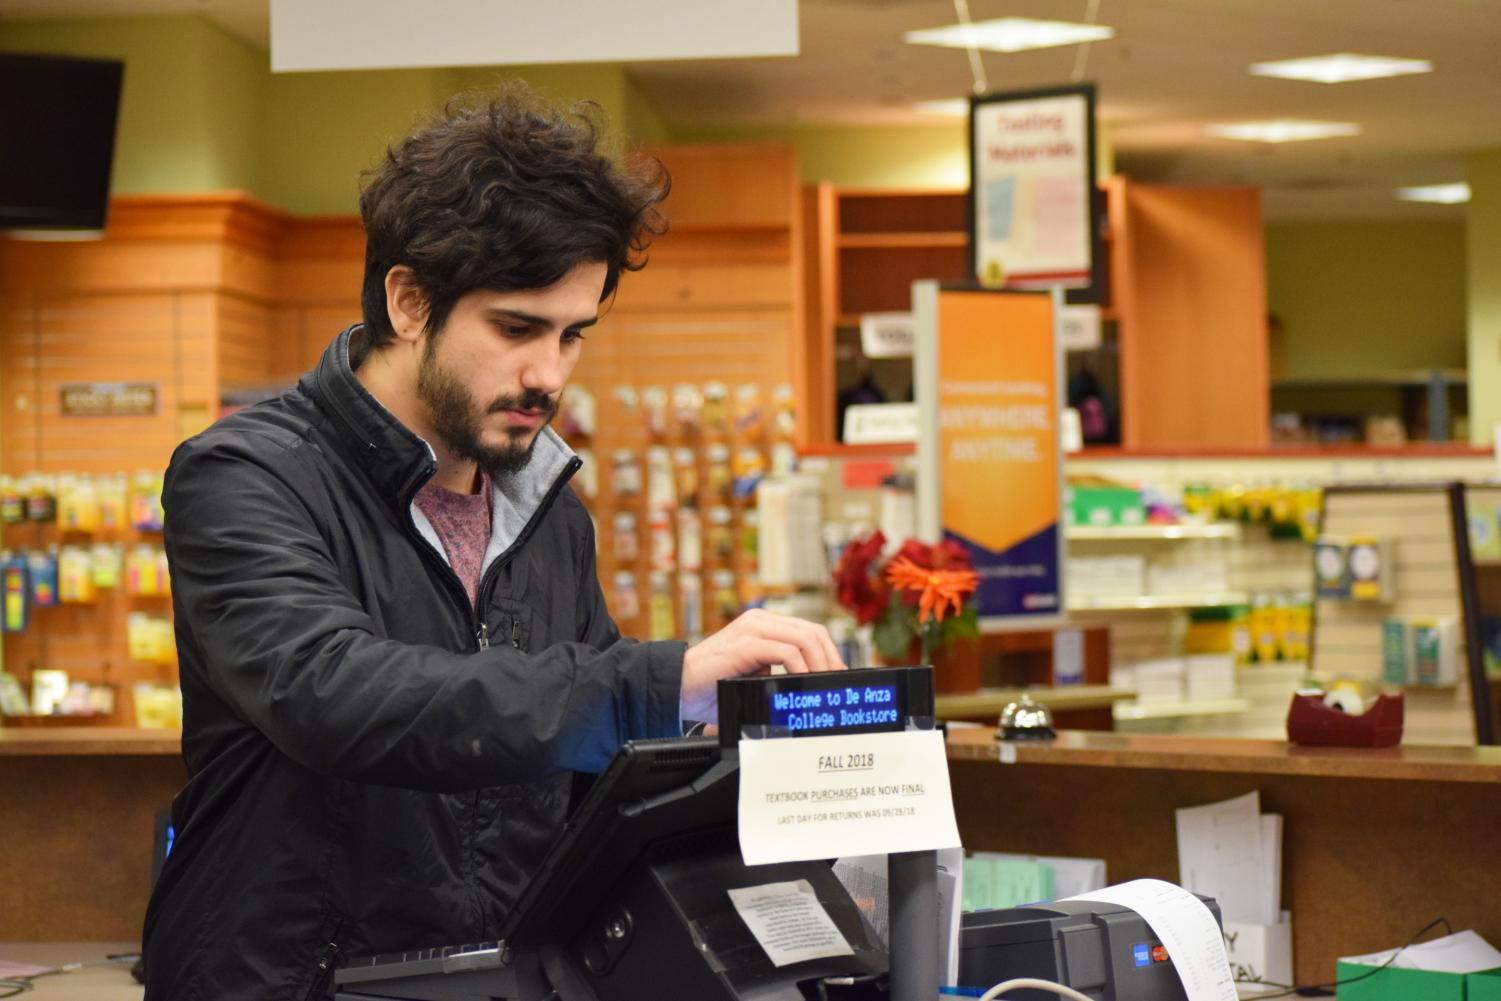 Brazilian student Vitor Miranda, 22, computer science major, works at the De Anza book-store textbook department.